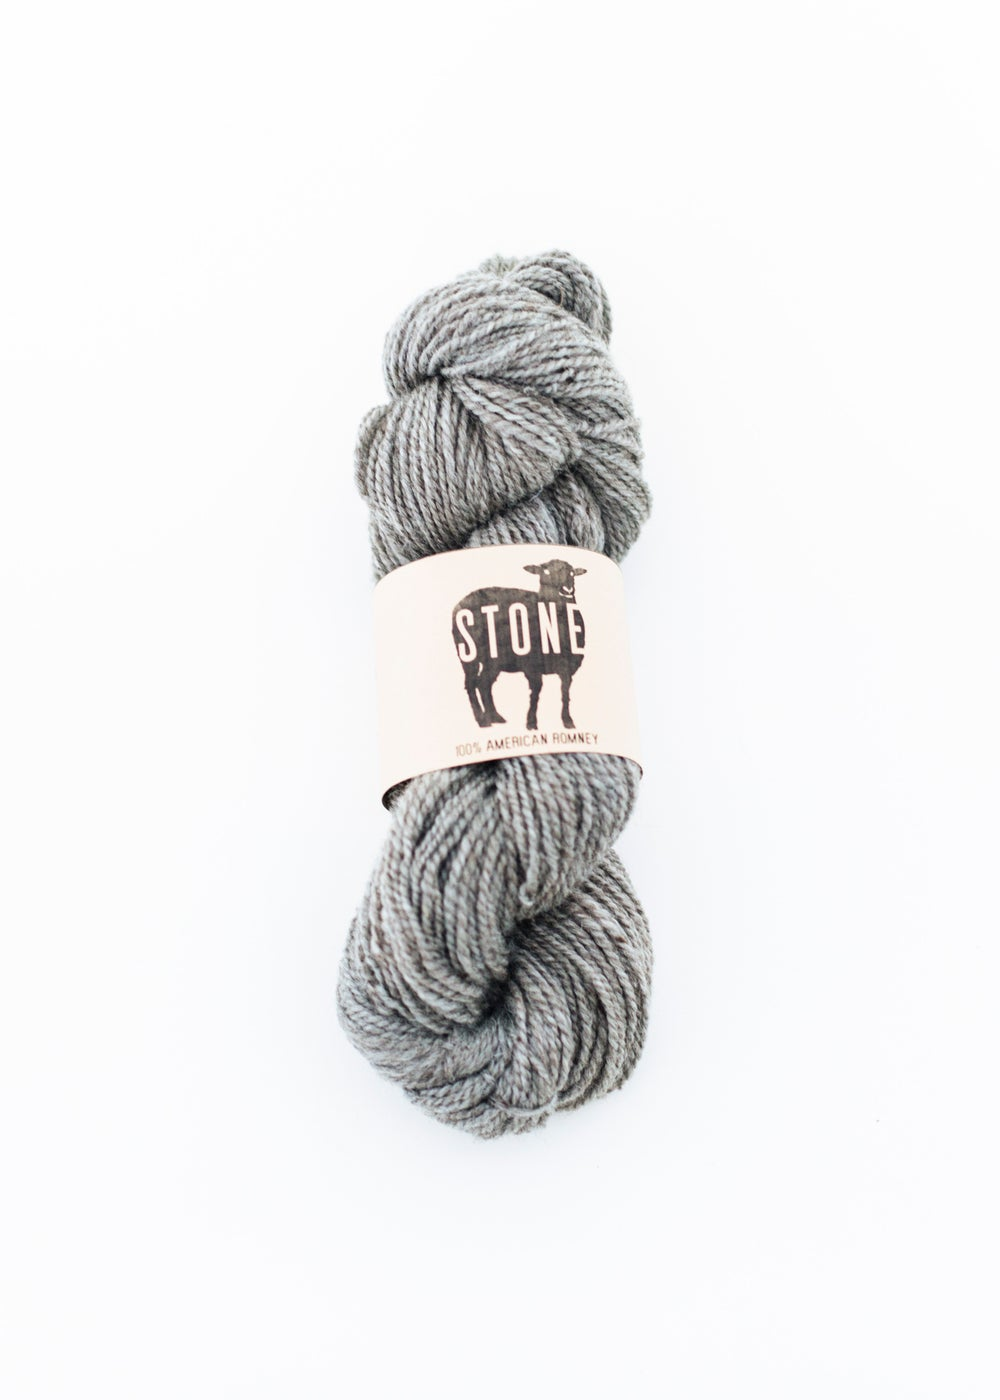 Image of Light Worsted Weight Undyed American Romney